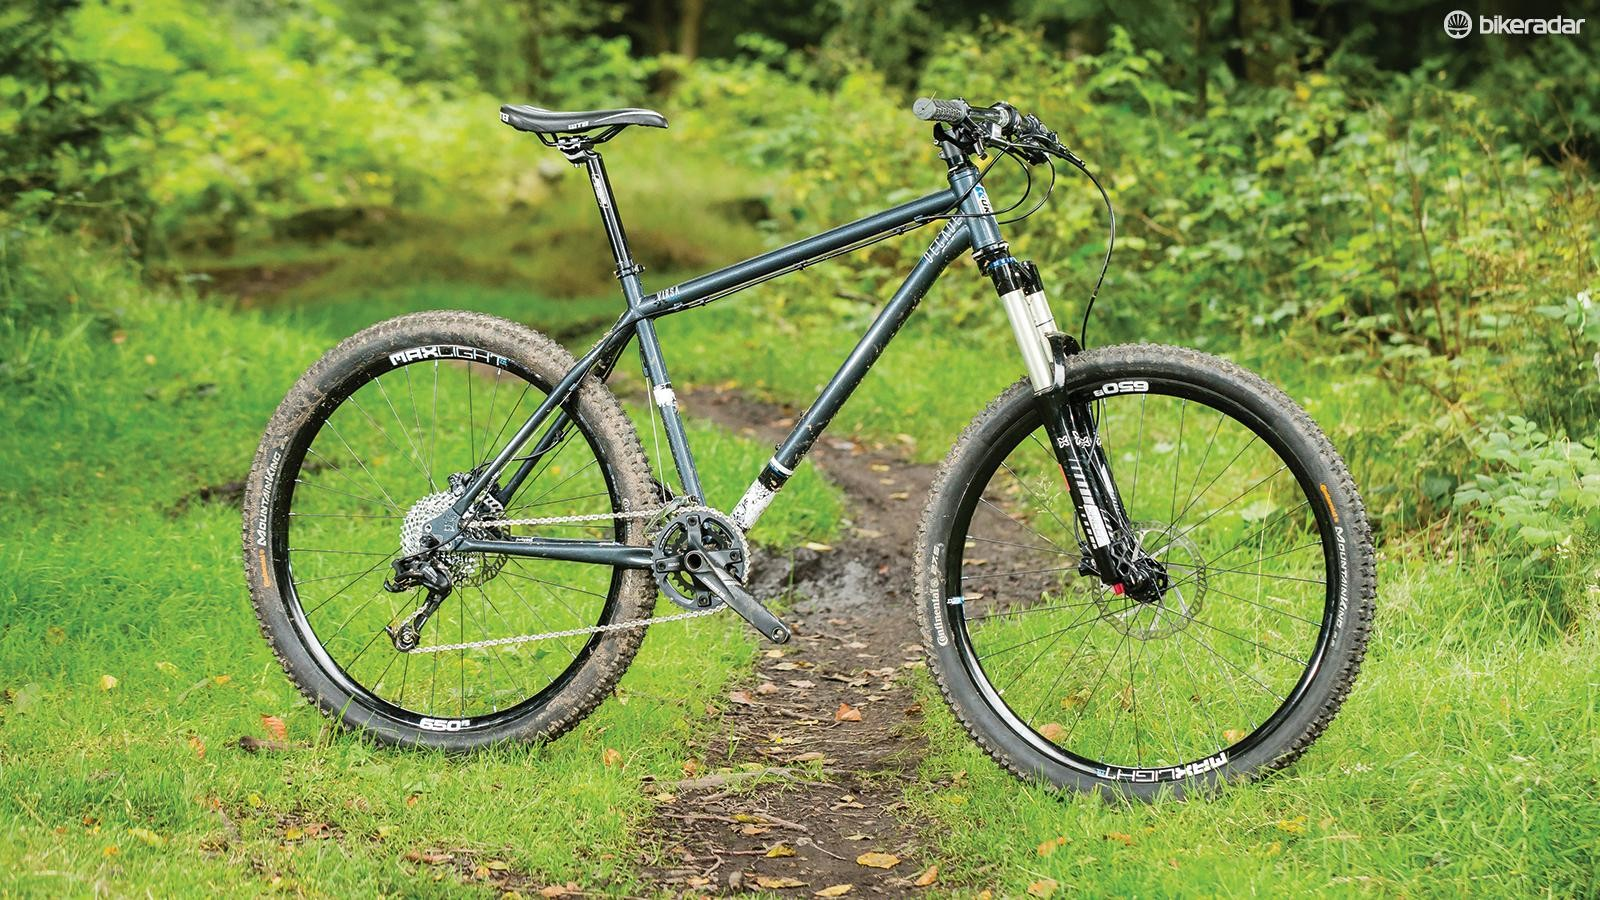 Kinesis' Decade VIRSA X5 is an appealing steel hardtail, but the kit on our build was spotty